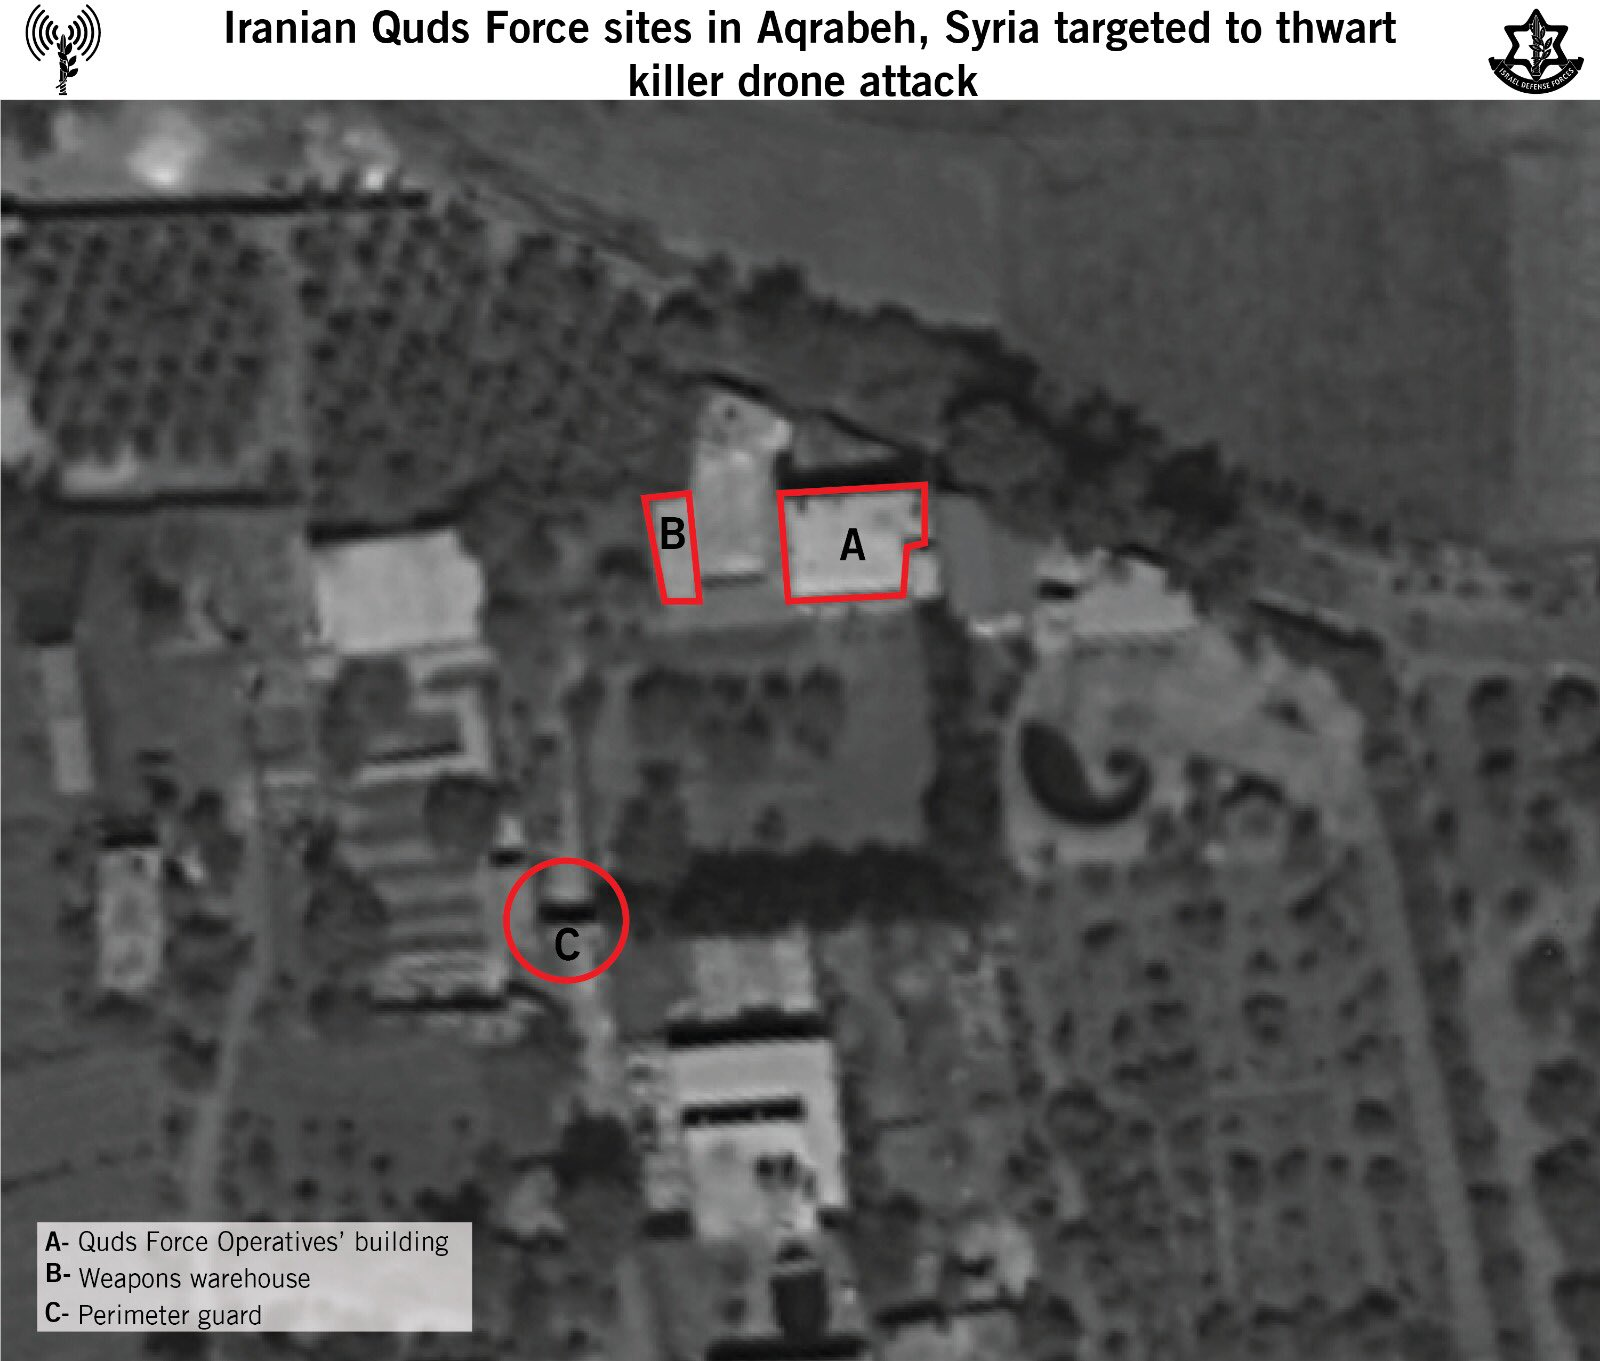 IDF Claims Qods Force Planned Drone Attack On Israel, Releases Satellite Image Of Targeted Positions